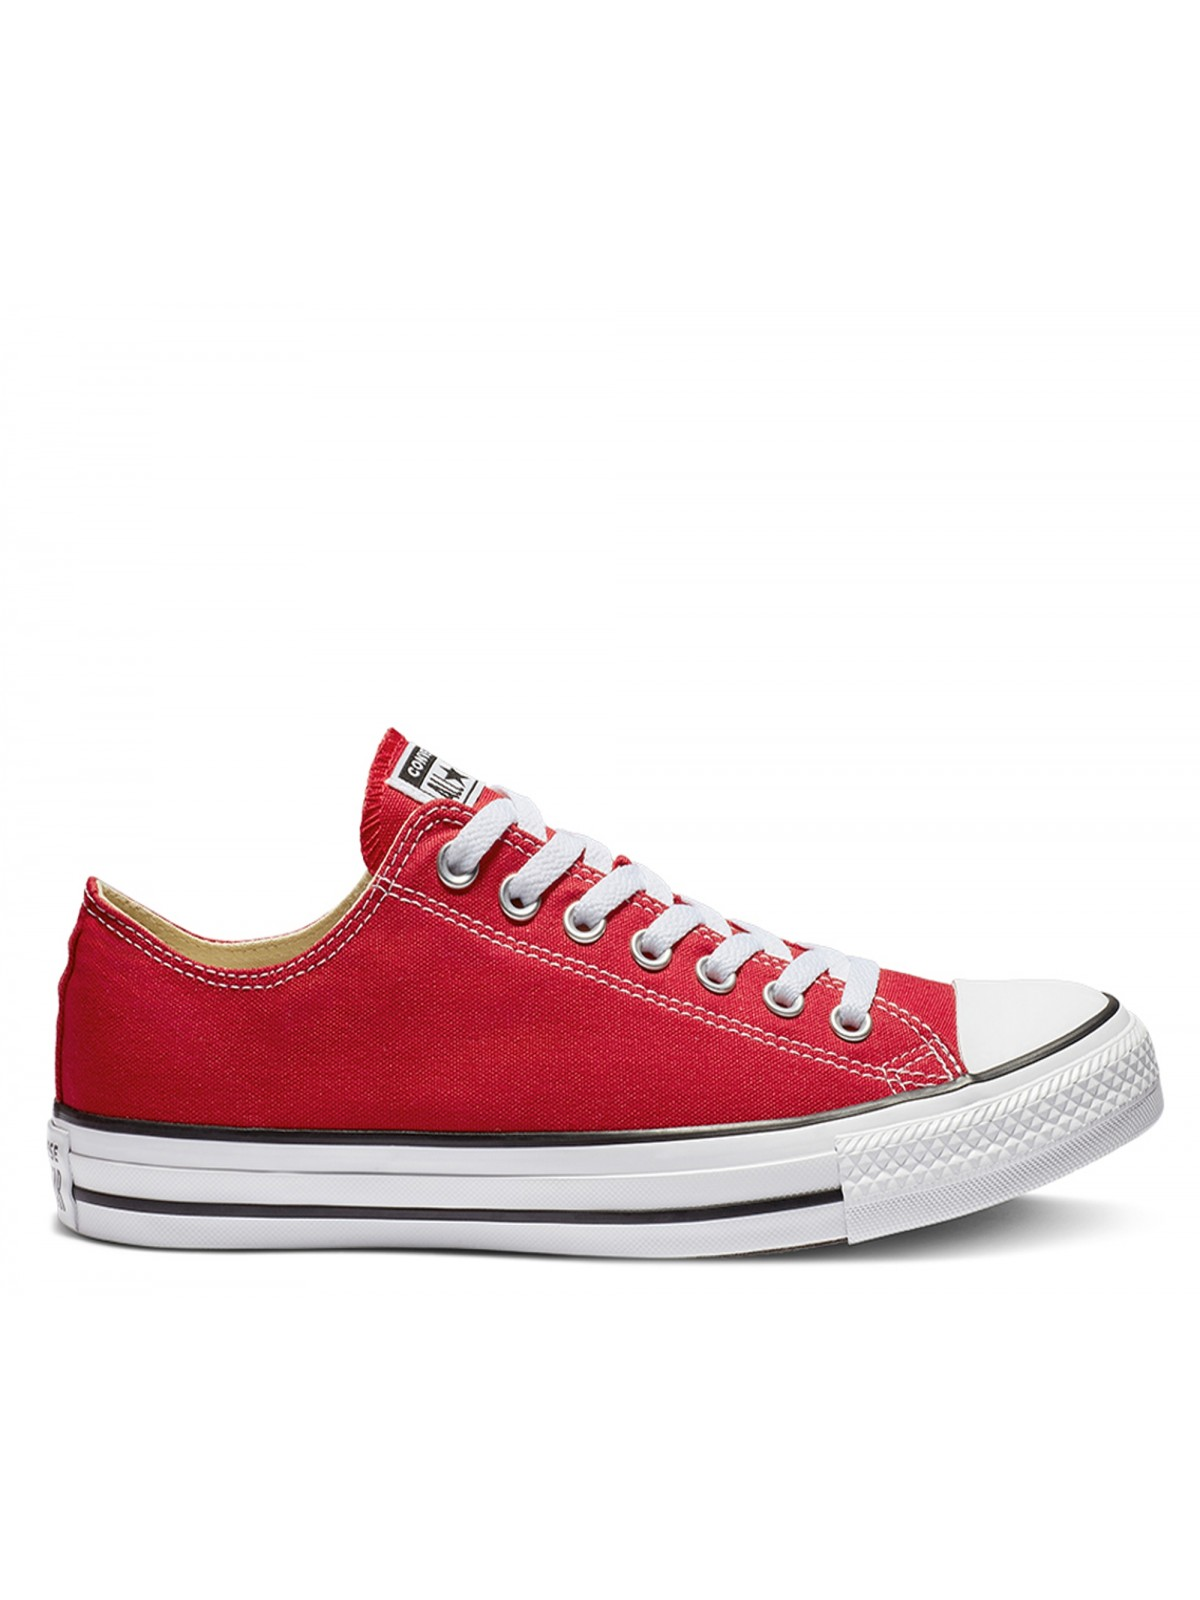 Converse Chuck Taylor all star toile basse rouge